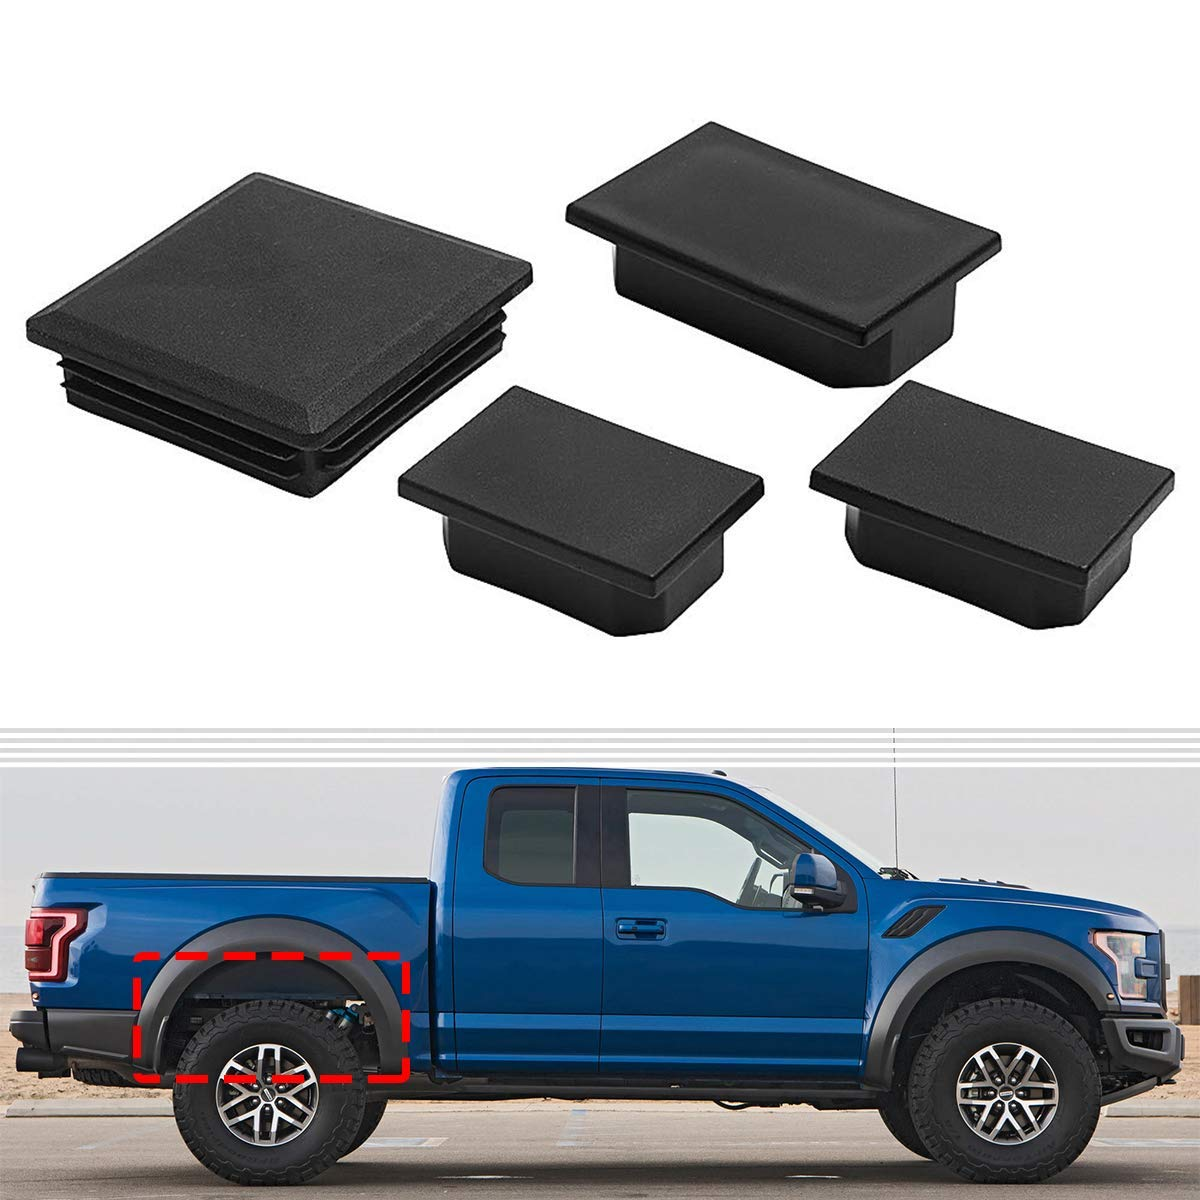 BASIKER 4X Square Frame Hole Plug Compatible with Ford F-150 Raptor for Rear Left /& Right Wheel Fits 2017 /& Later Models